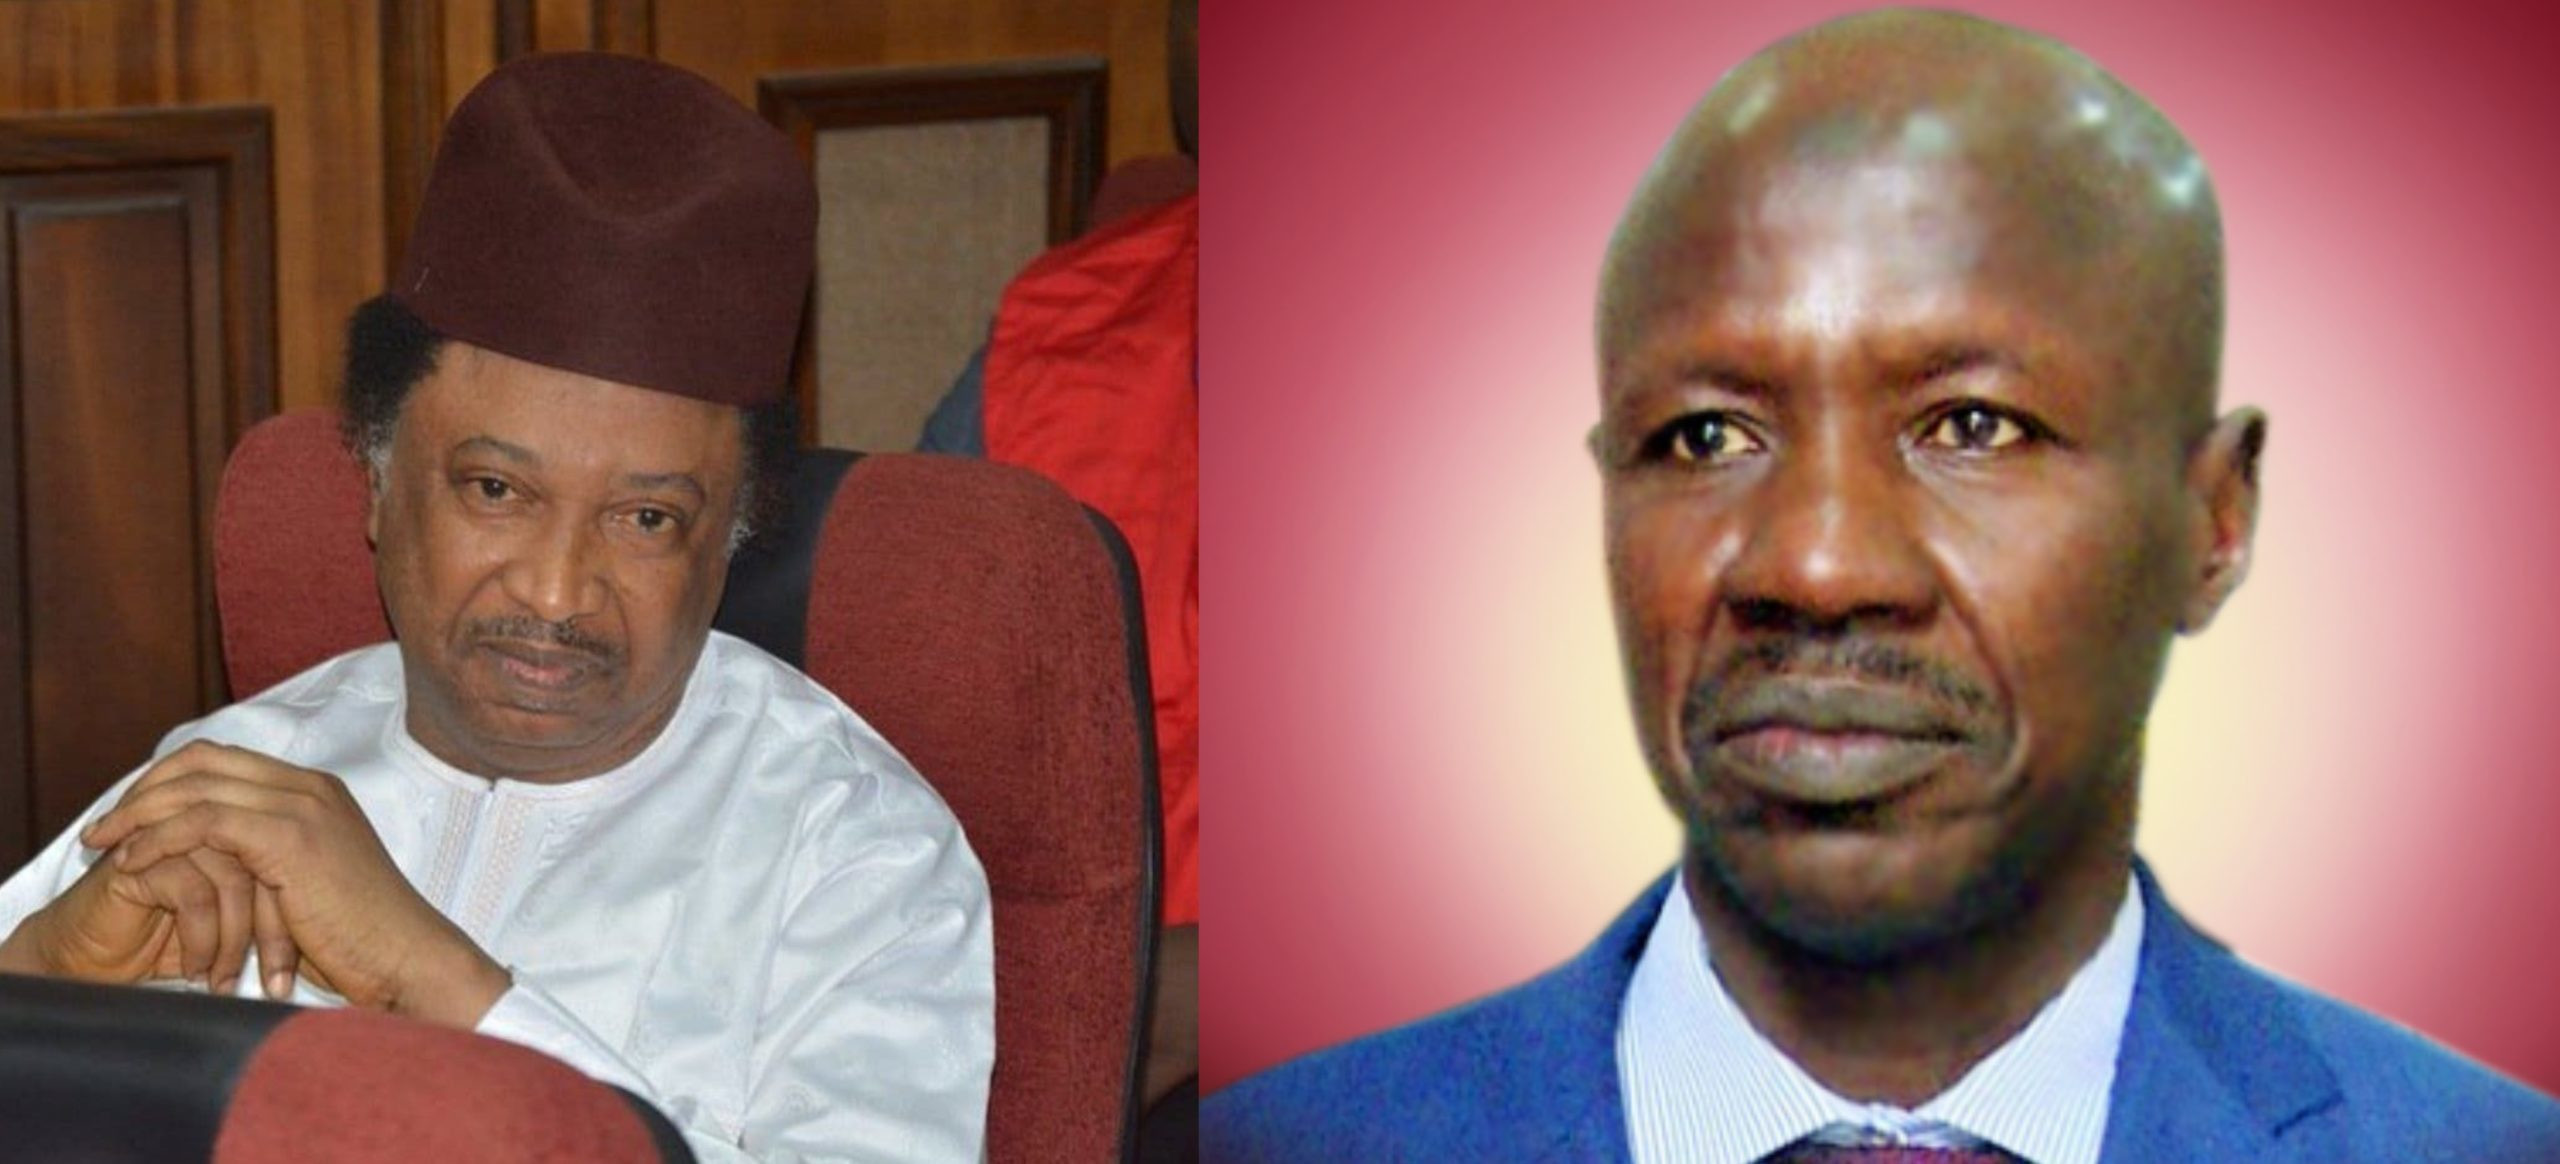 EFCC is being ran by an inside cult called 'the Magu Boys' or 'the Chairman Squad' - Shehu Sani